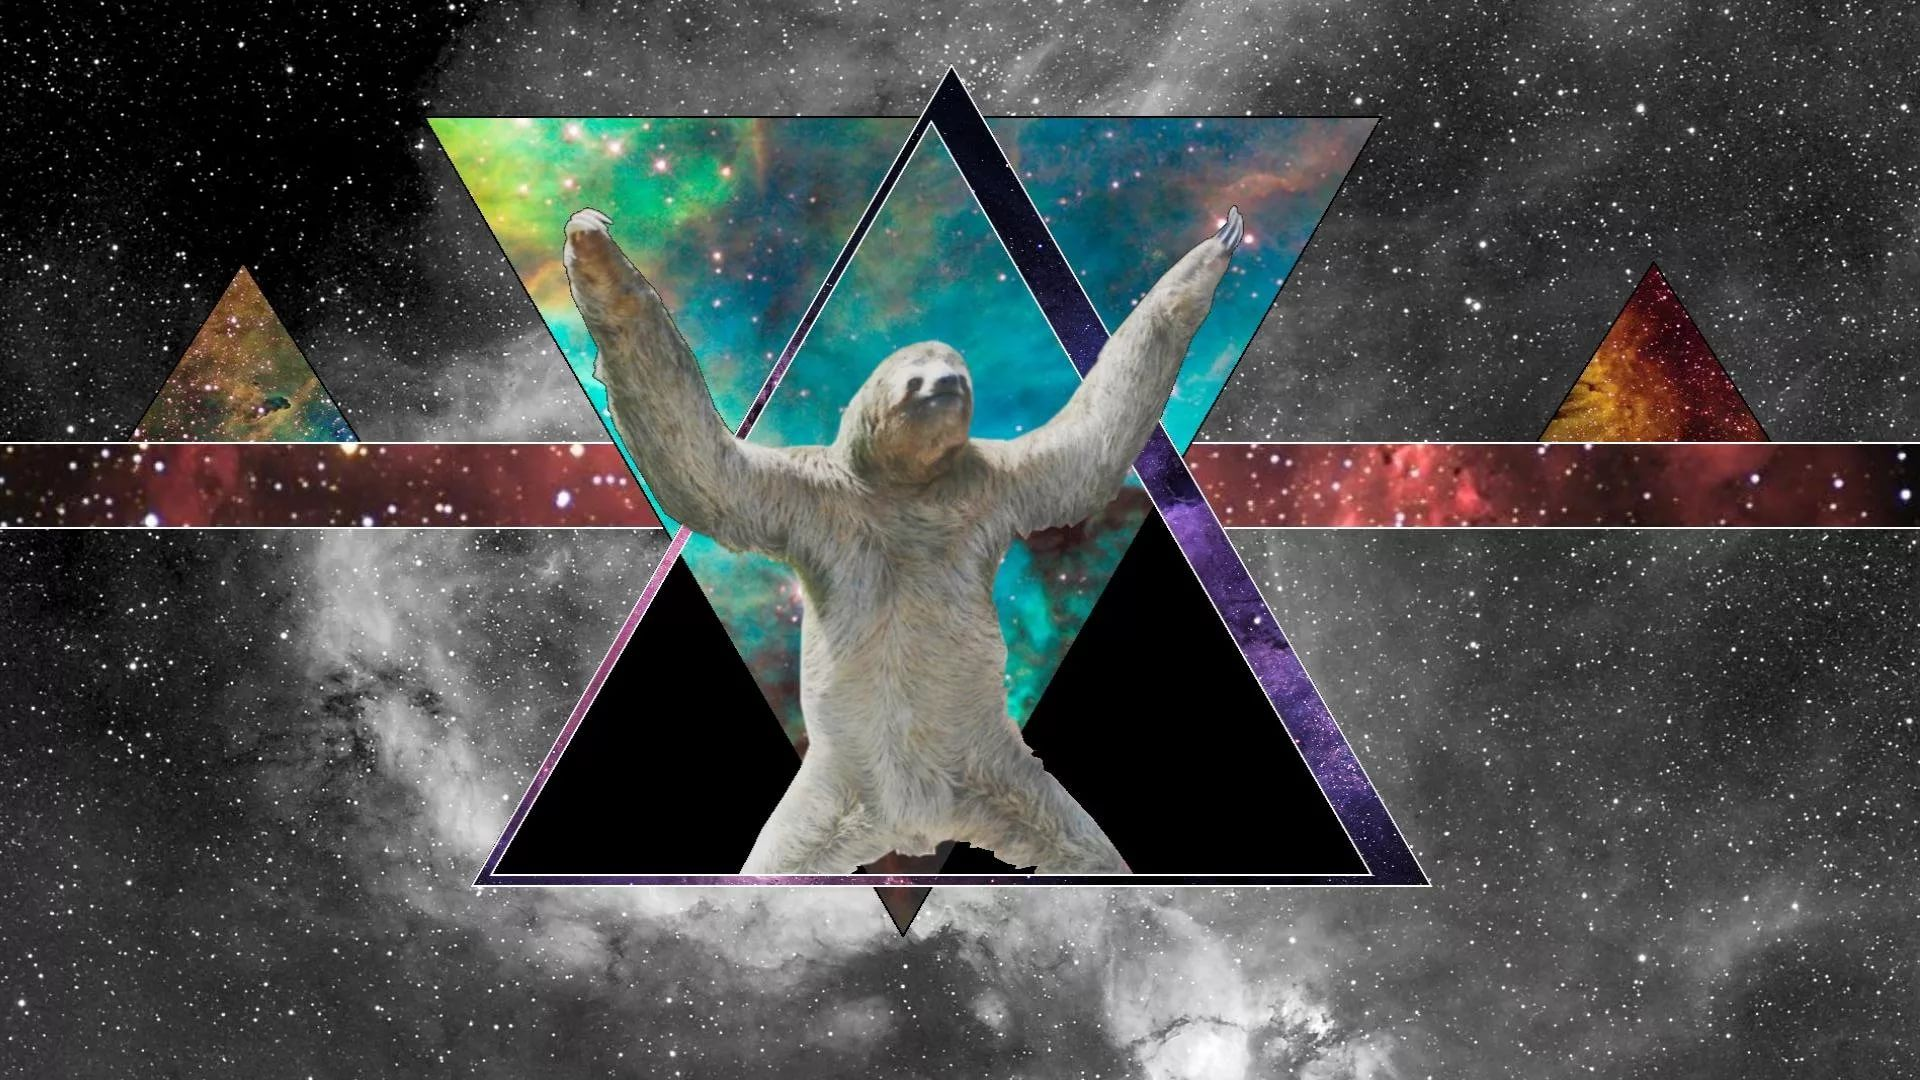 Sloth In Space Wallpaper Posted By Christopher Tremblay